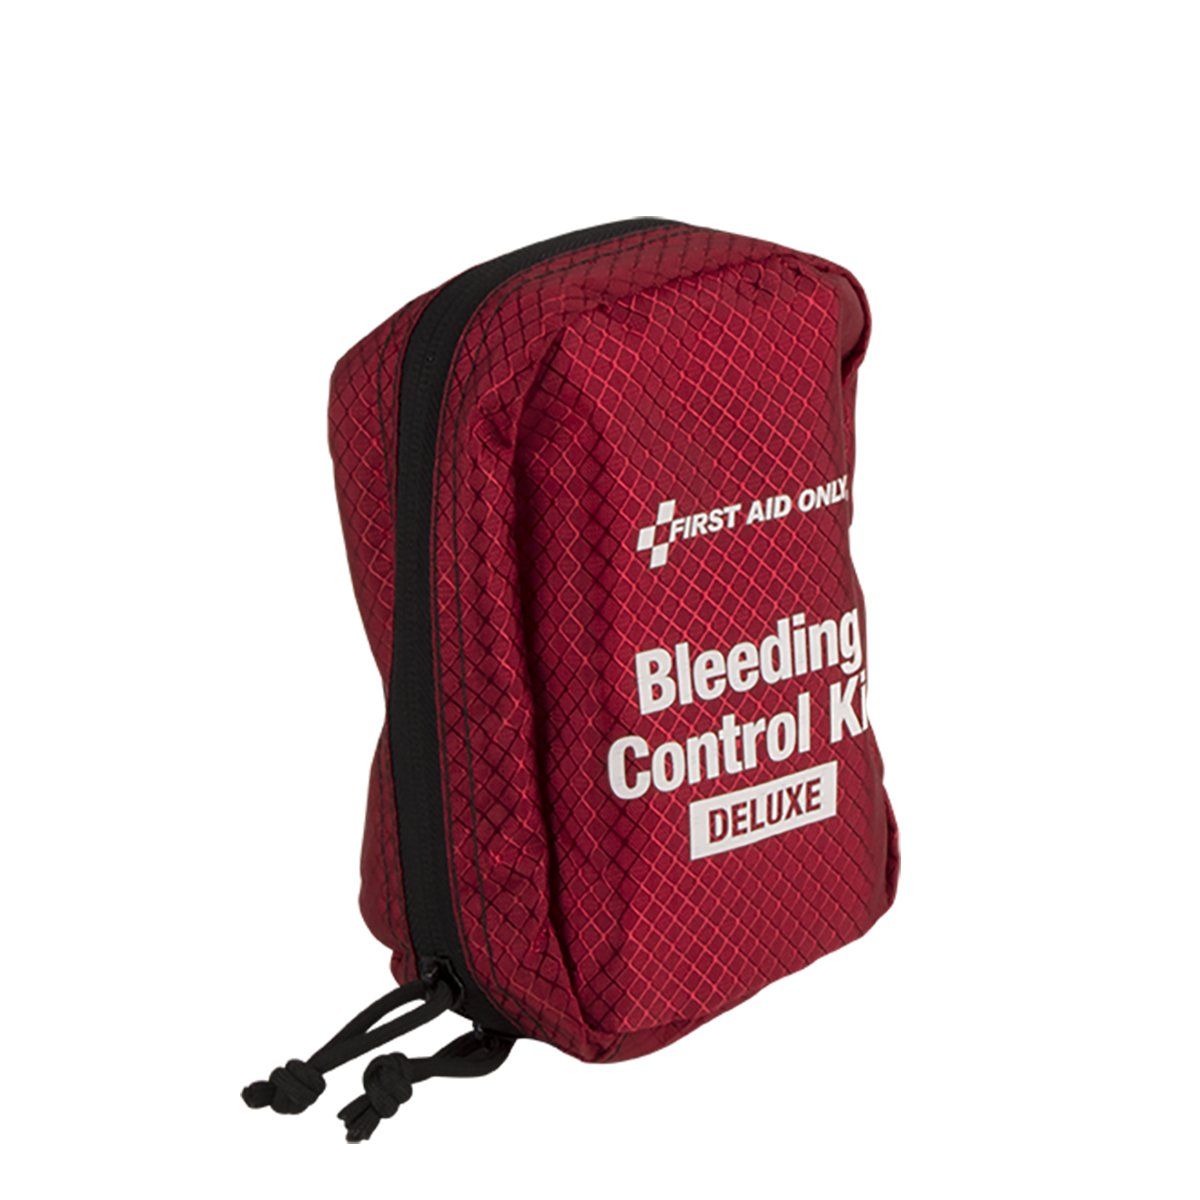 Deluxe First Aid Only 91060 Bleeding Control Kit